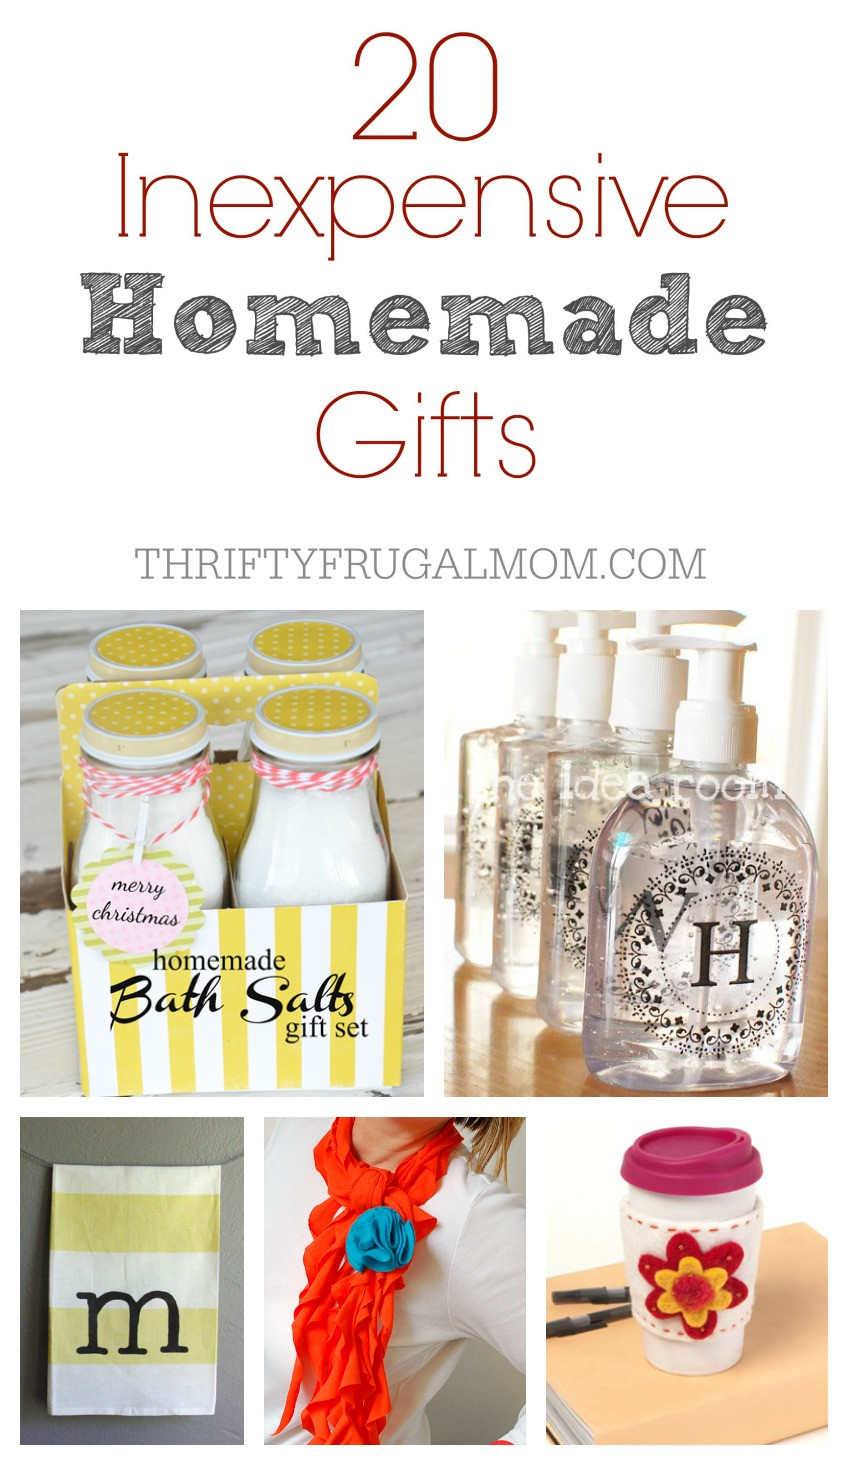 Best ideas about Cheap Holiday Gift Ideas . Save or Pin 20 Inexpensive Homemade Gift Ideas Now.